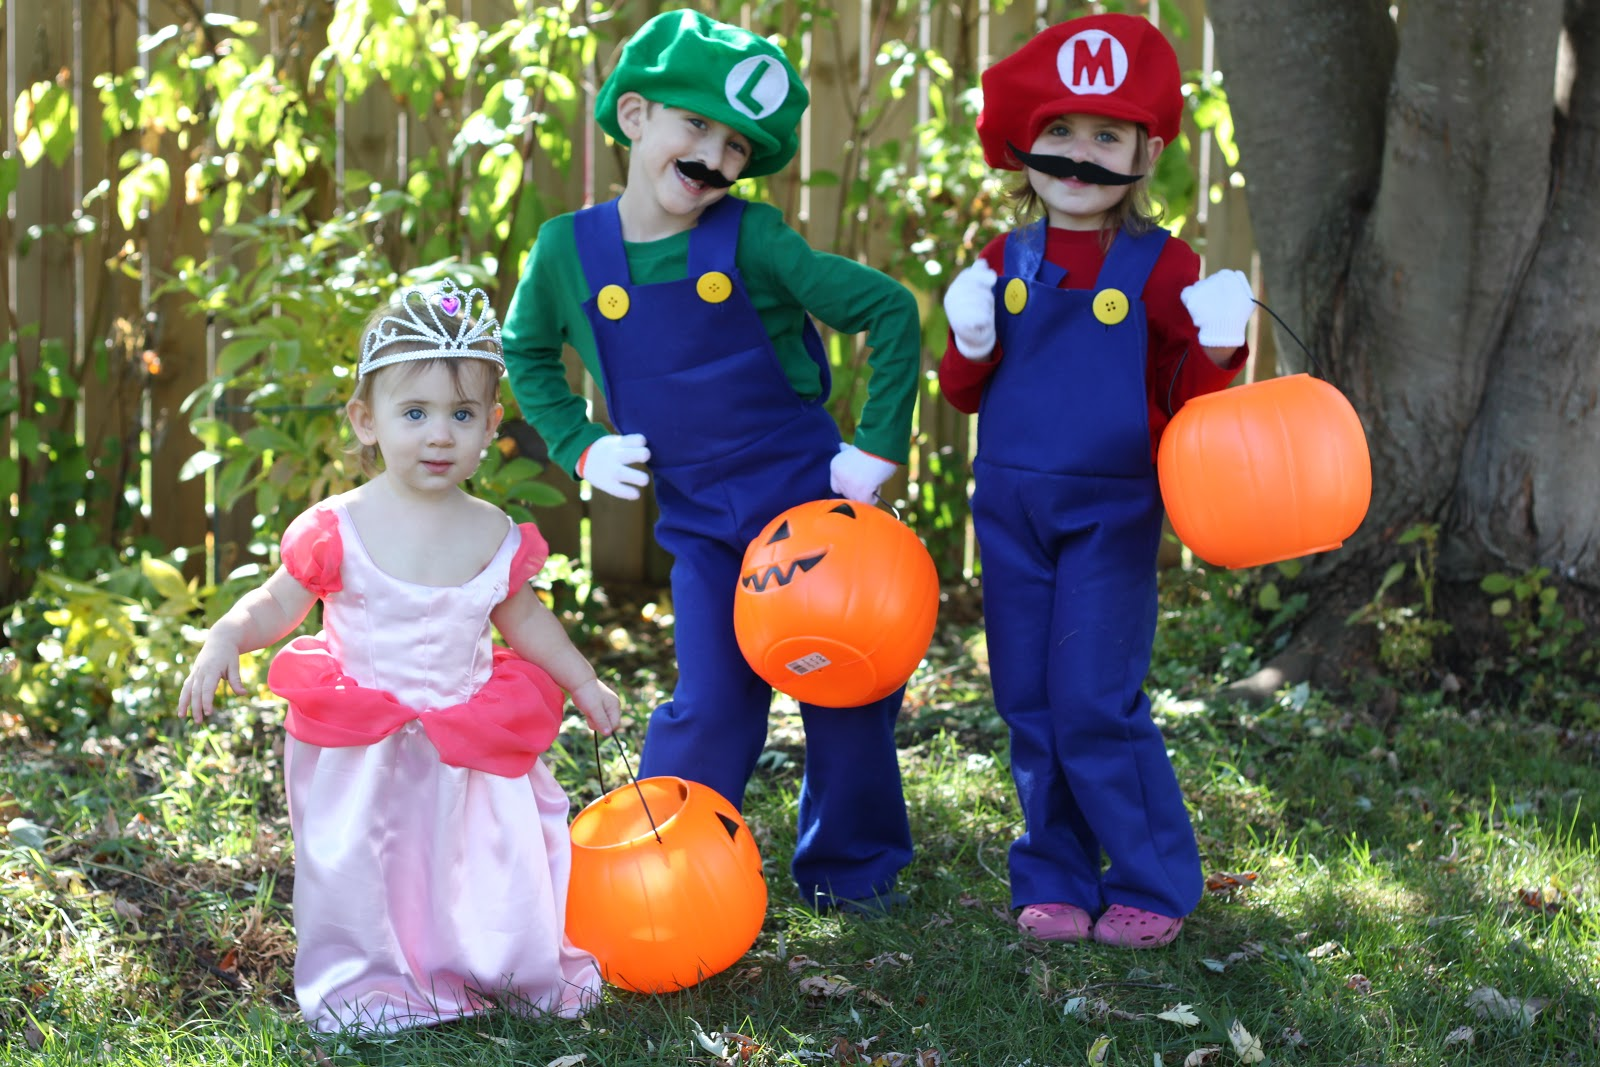 How to make mario and luigi costumes tutorial smashed peas carrots solutioingenieria Images